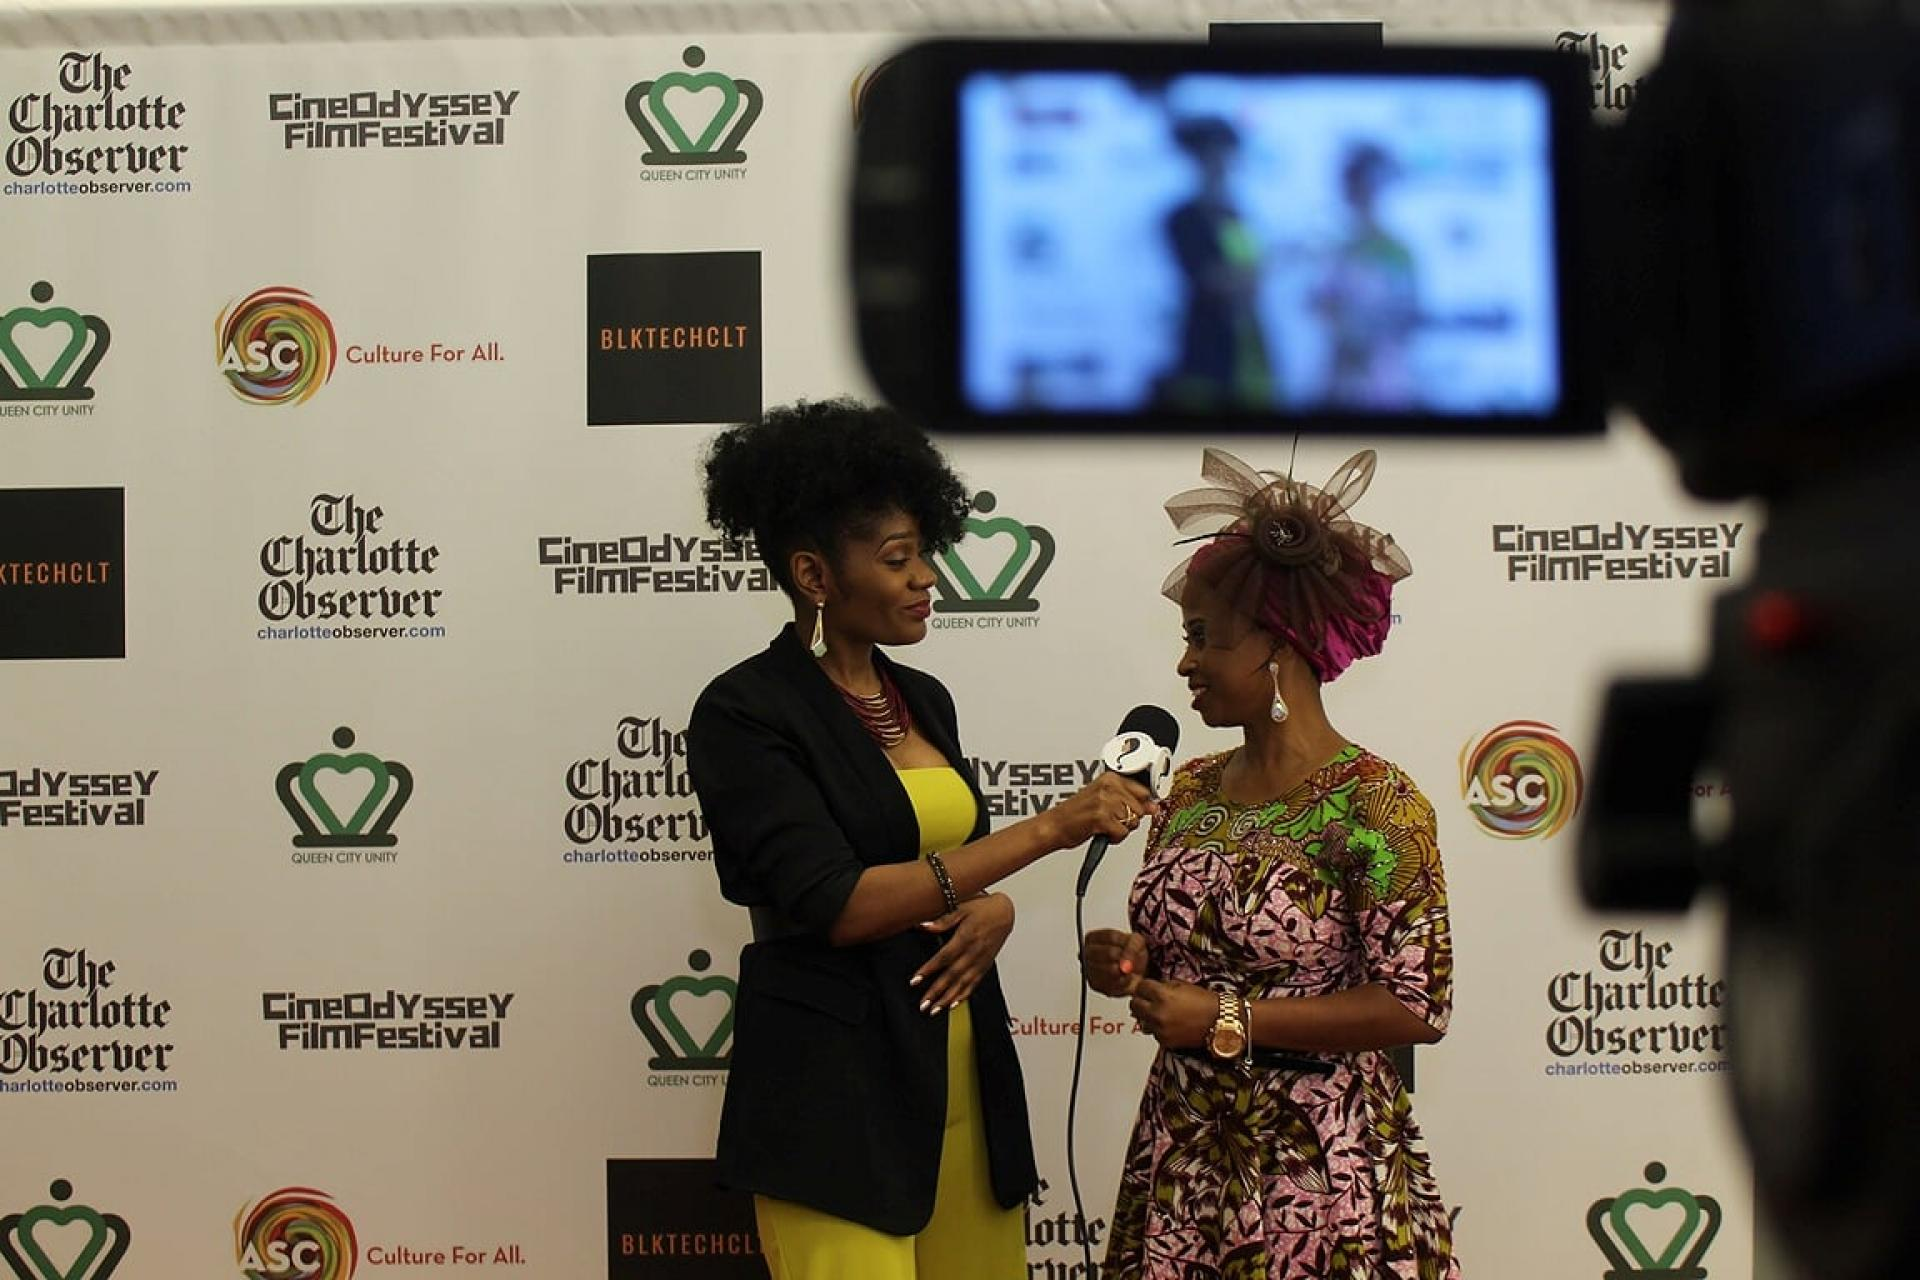 Red Carpet Host Saran Almond interviews filmmaker Gladys Edeh at the CineOdyssey Film Festival | Photo Credit: Zach Smith